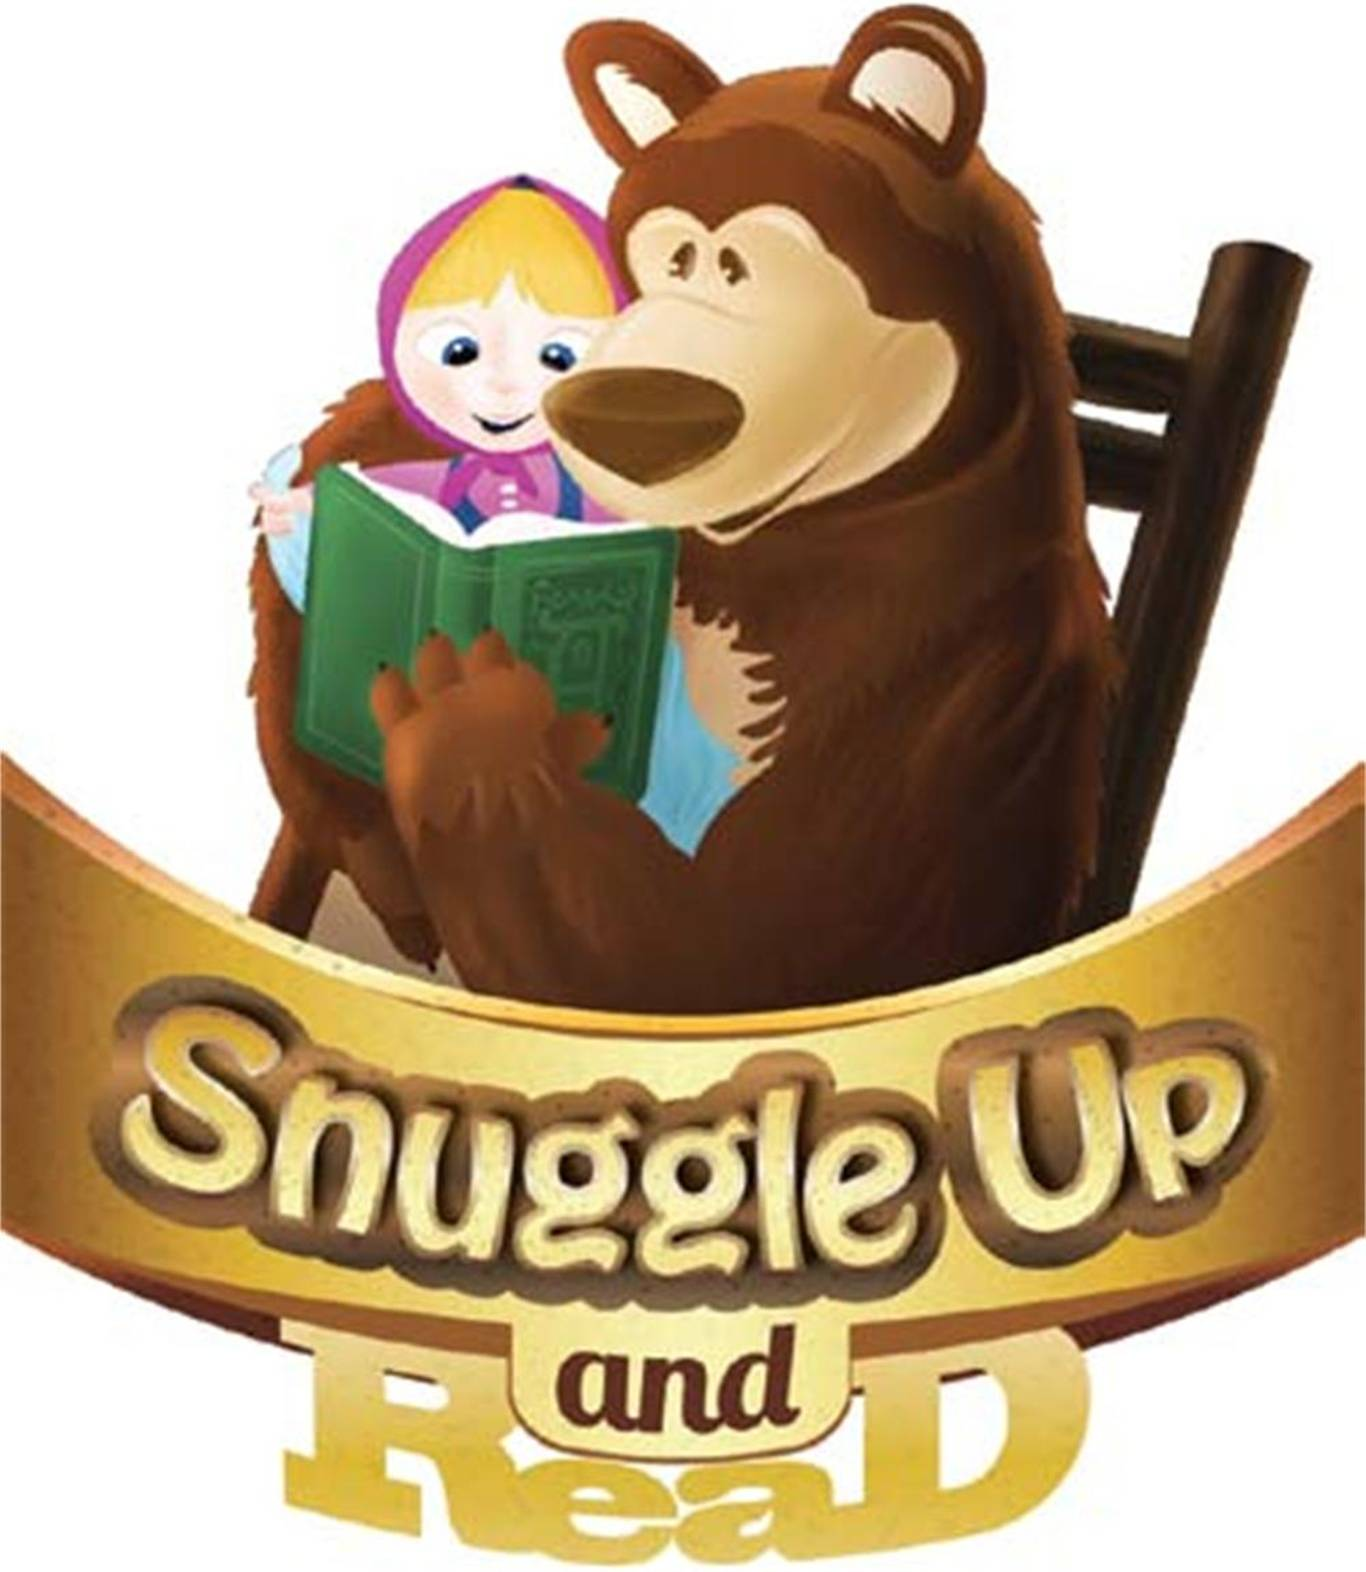 Snuggle Up and Read Event Coming February 1st